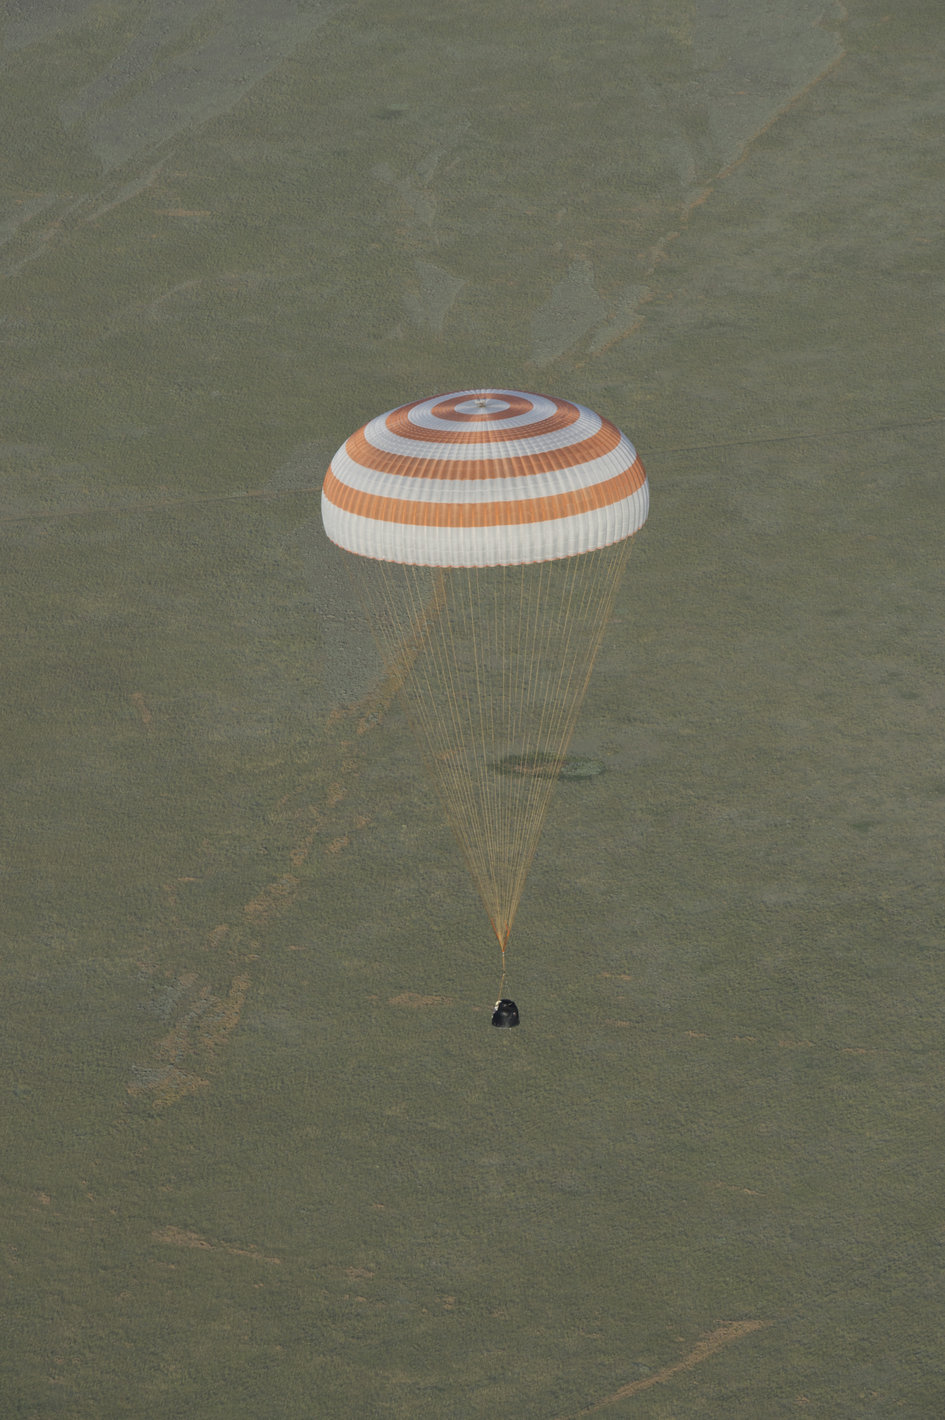 Landing of the Soyuz TMA-15M spacecraft